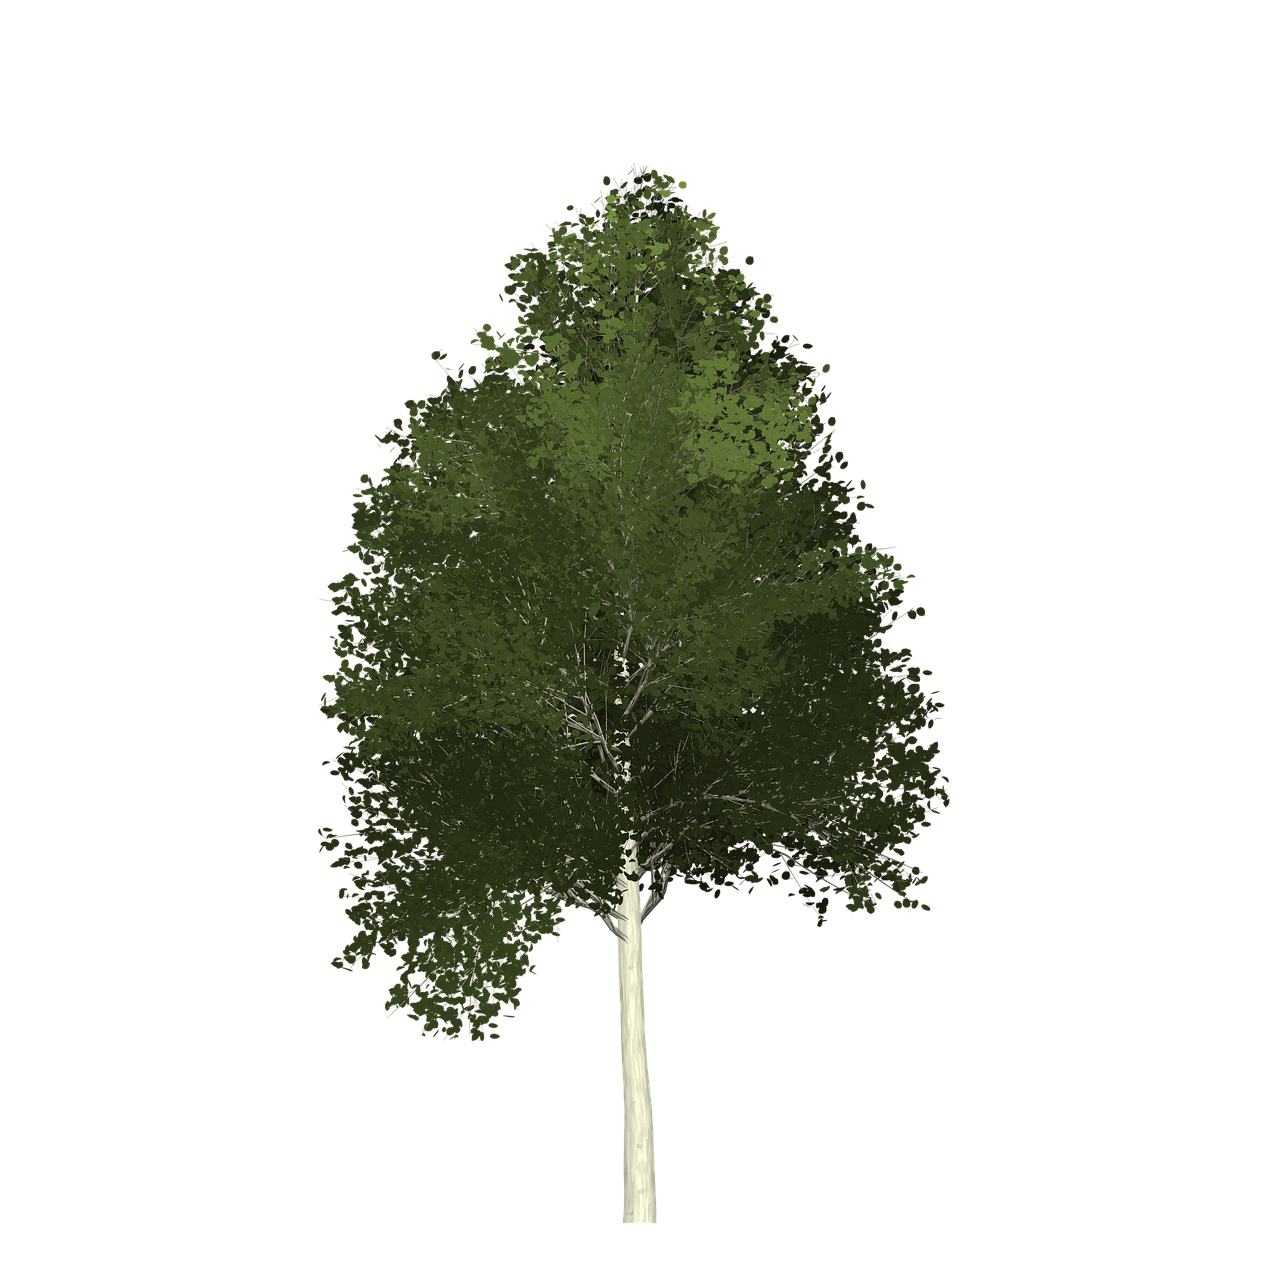 Forest Aspen Tree Painted Tree Nature Green Image Forest Aspen Tree Painted Tree Nature Green Image Aspen Trees Painting Nature Friendly Nature